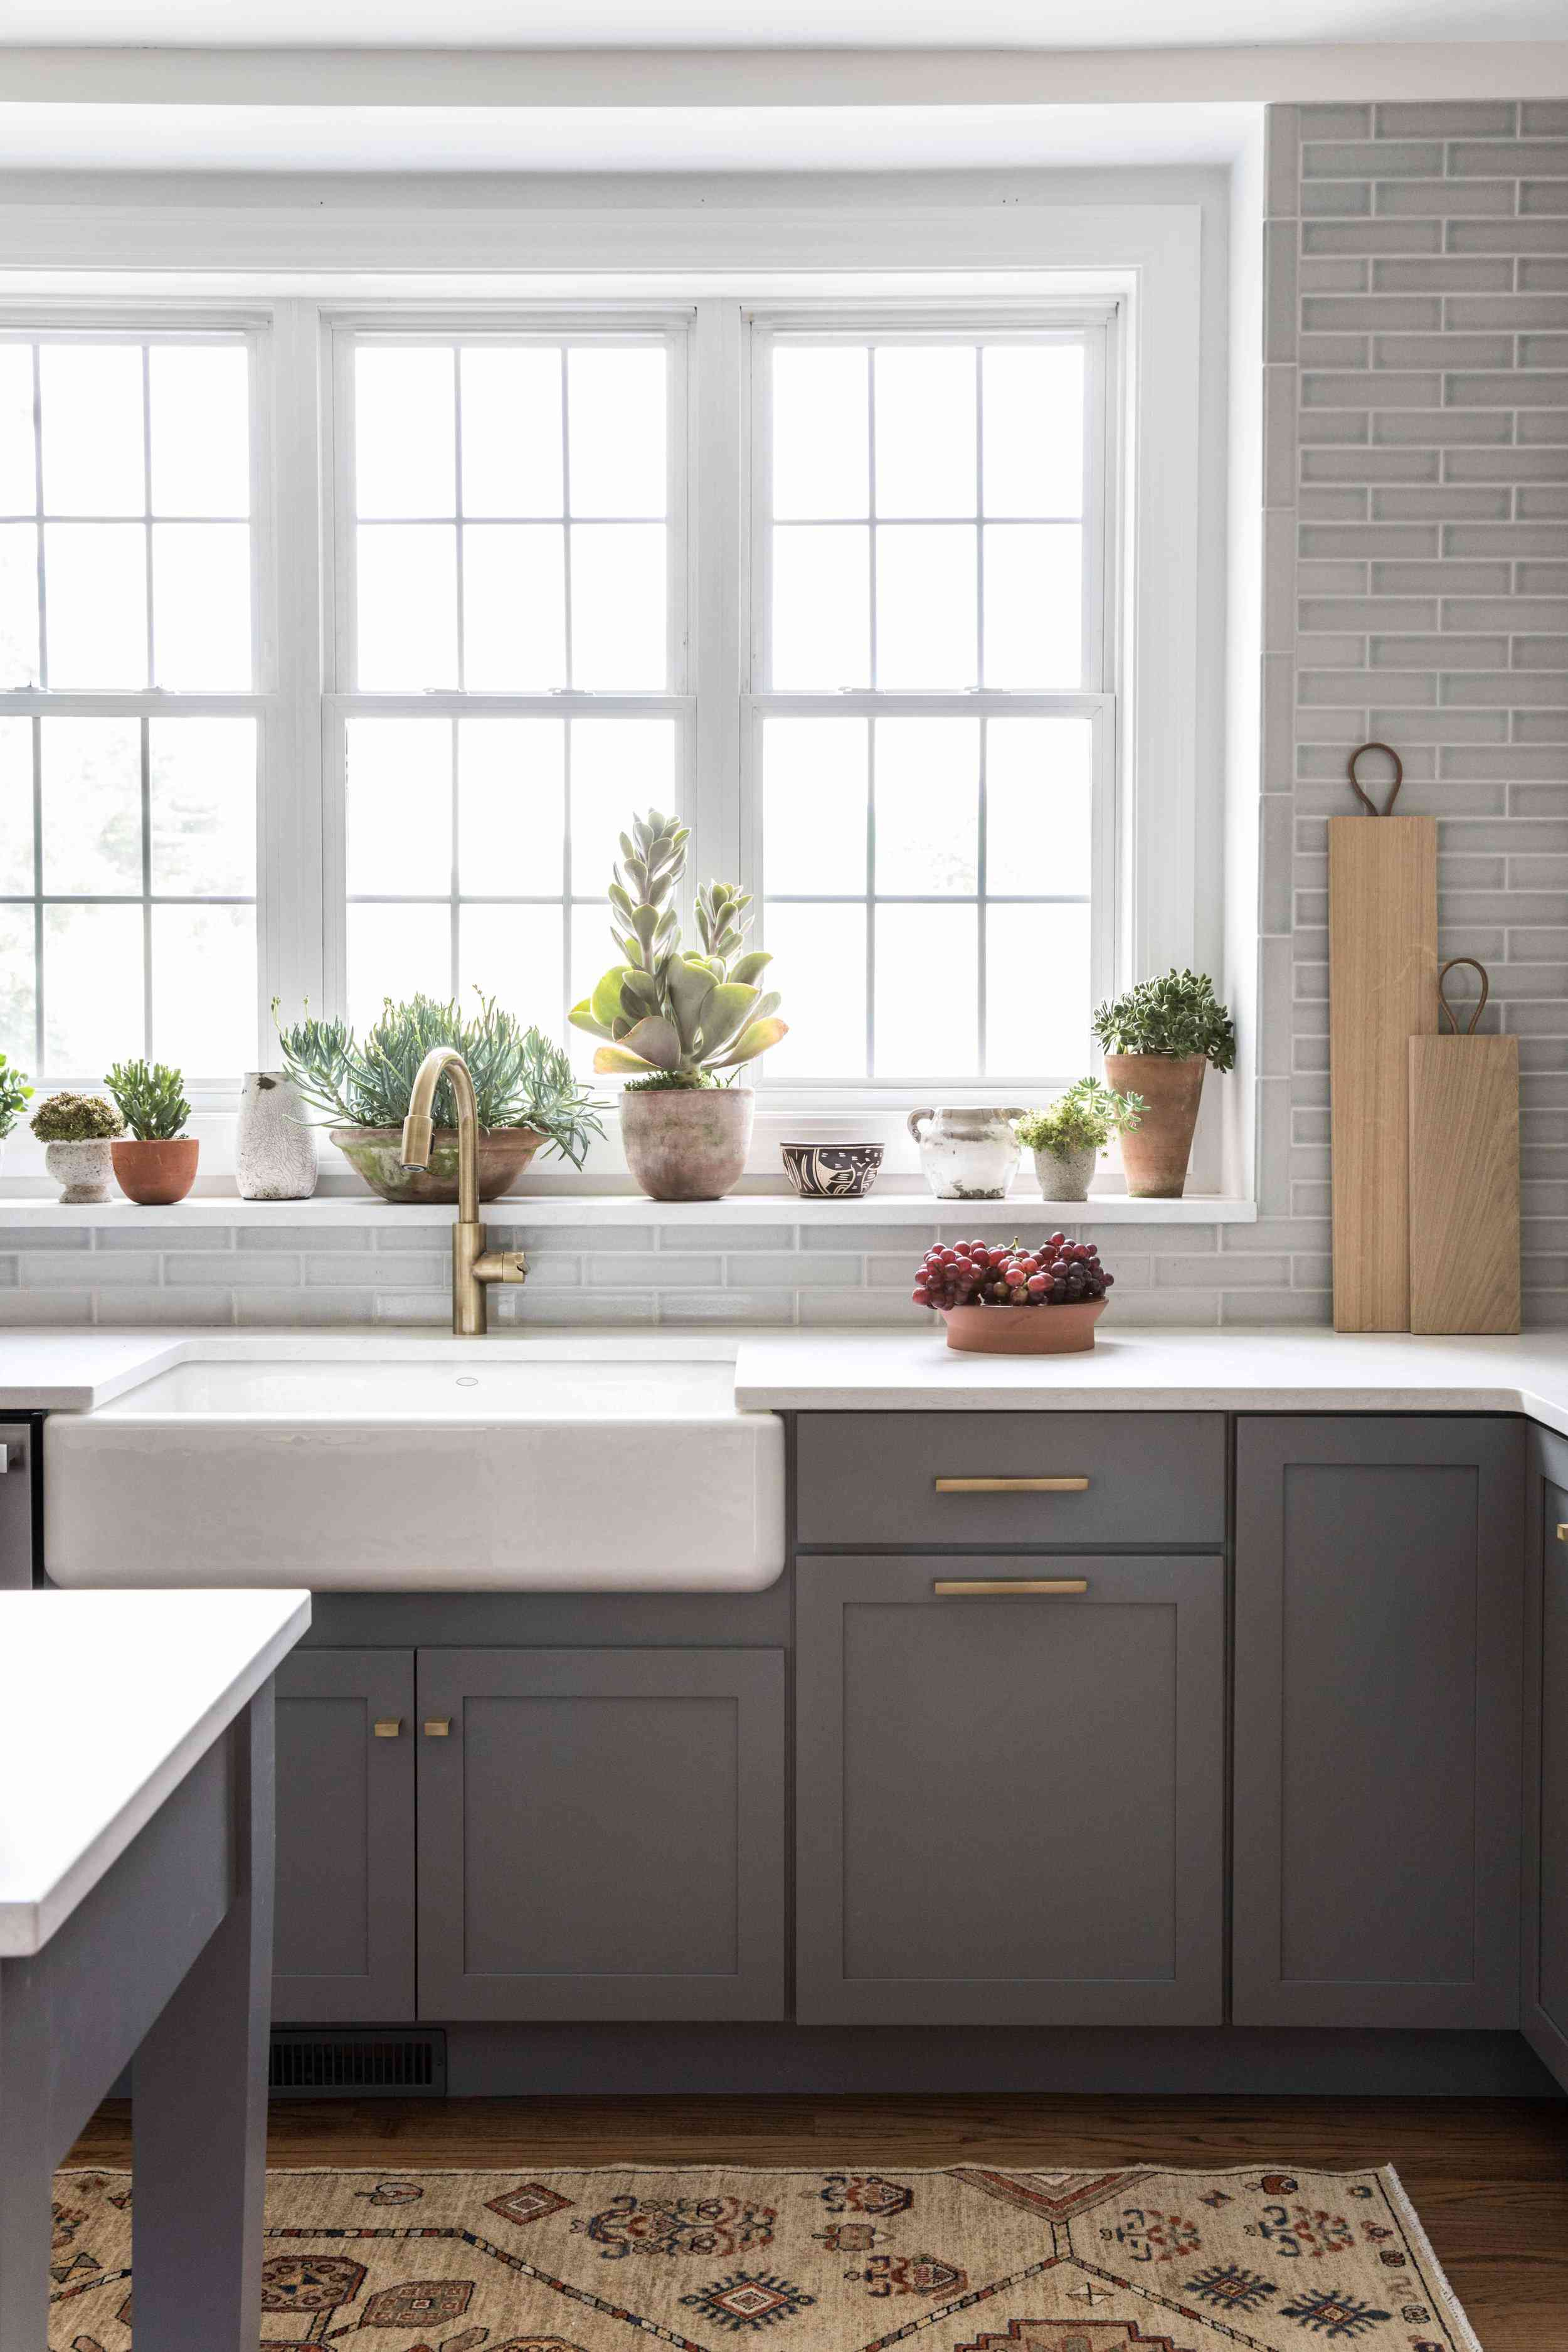 A kitchen with gray cabinets and a gray tiled backsplash